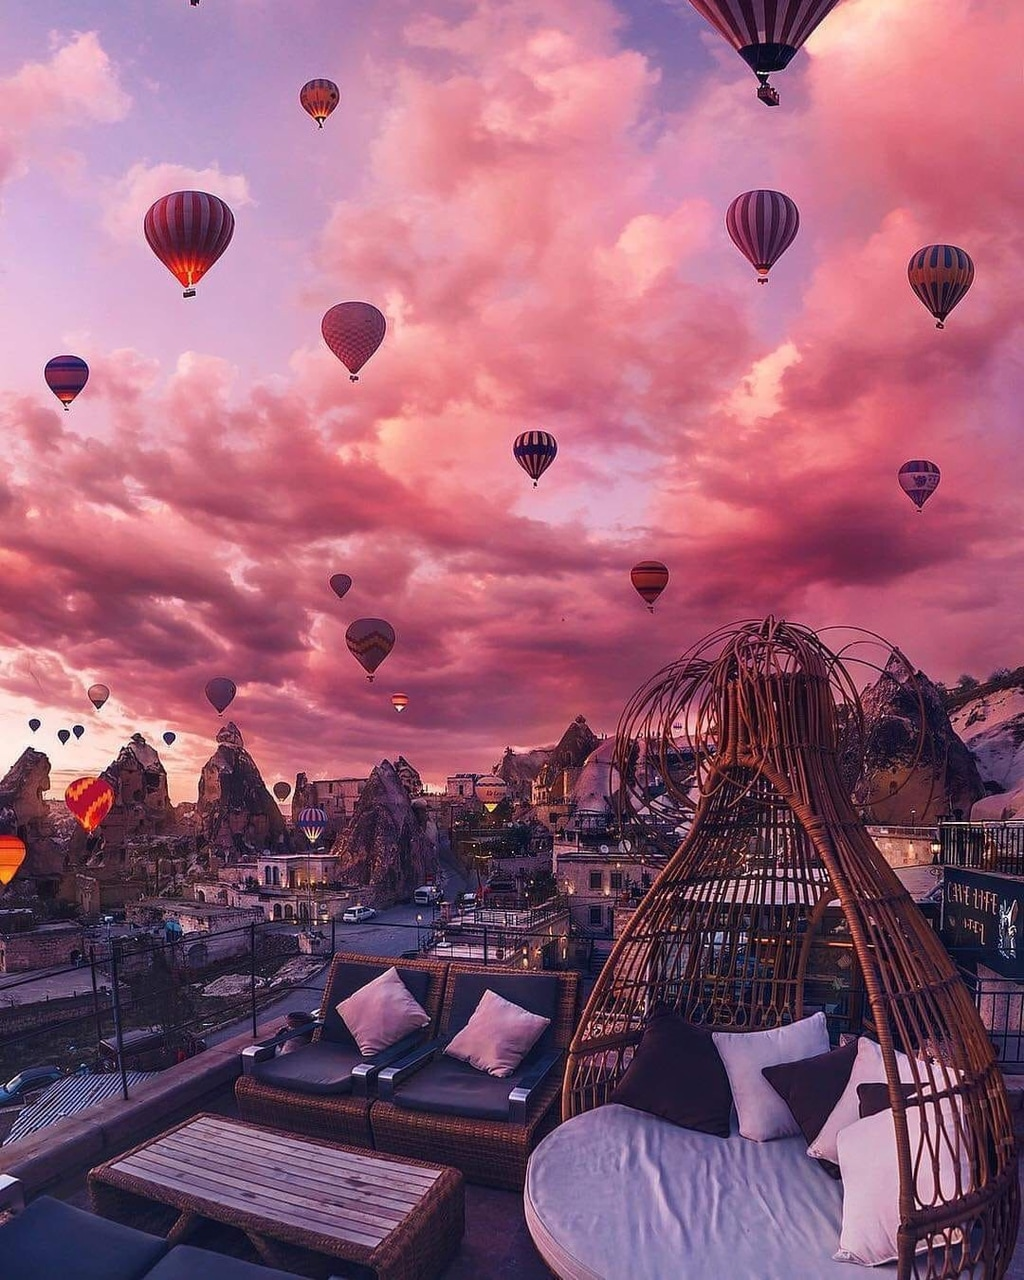 airballoons, place, pinksky and turkey